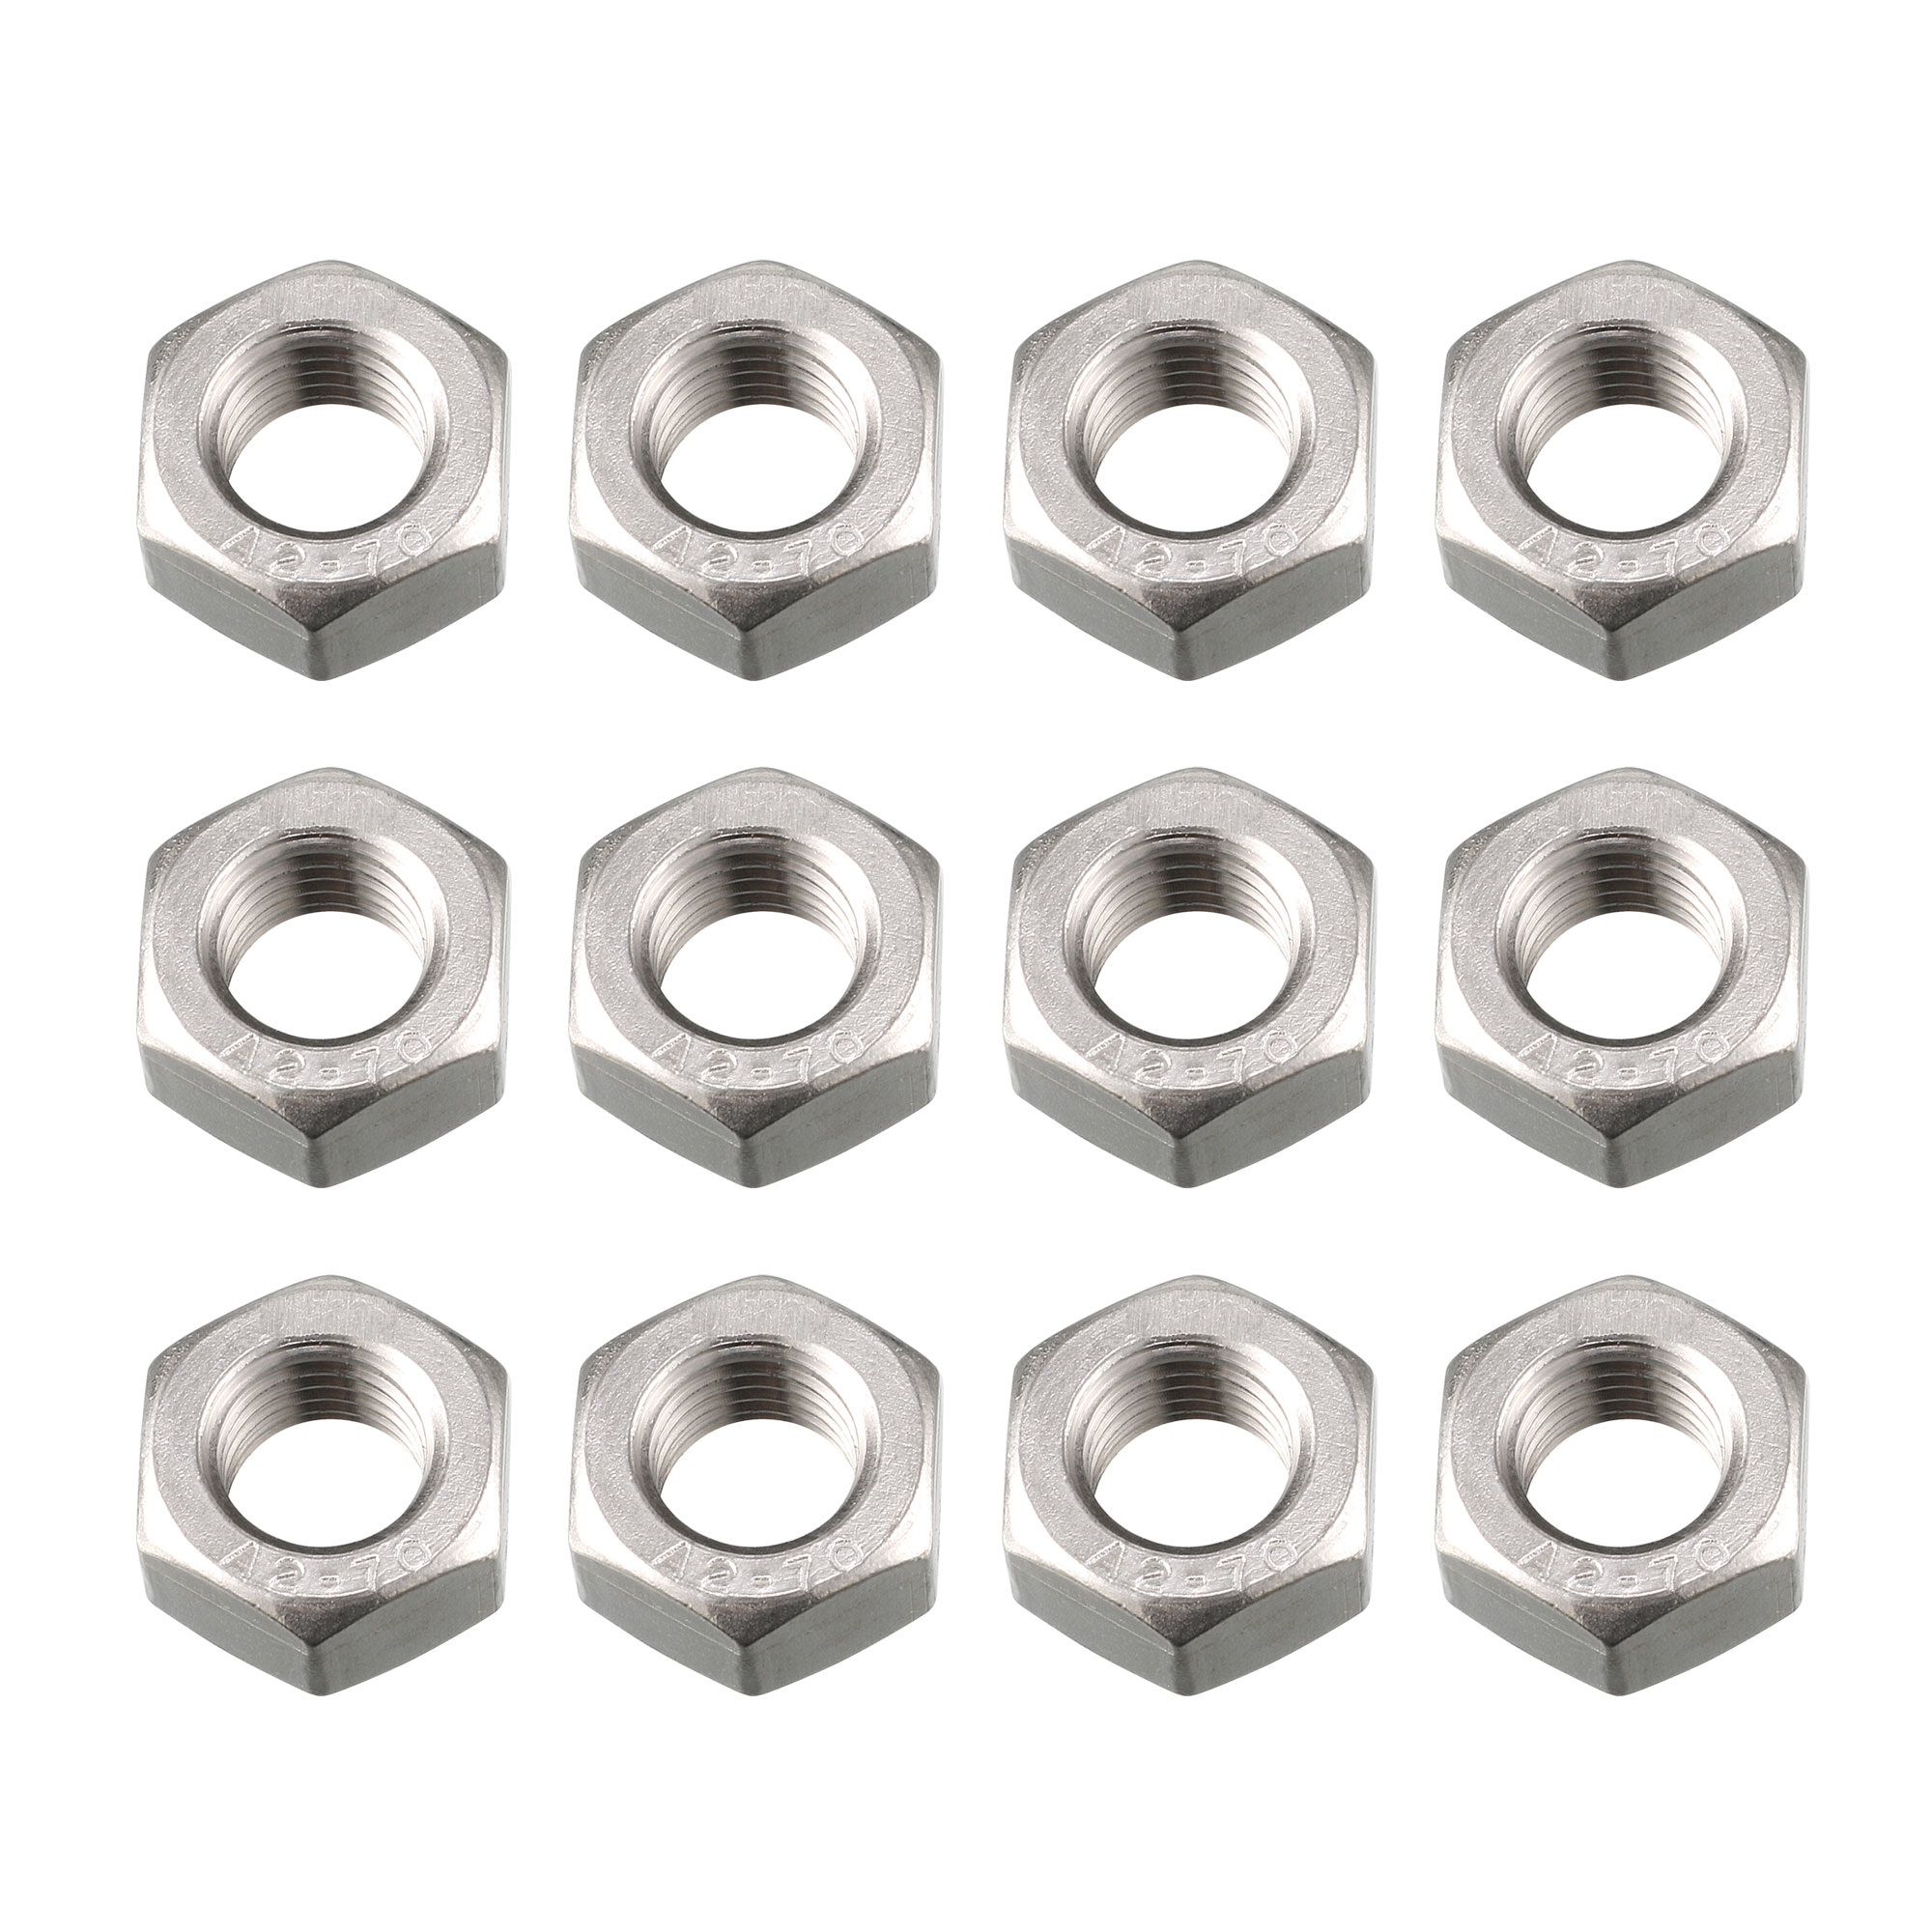 12pcs M12 x 1.5mm Pitch Metric Fine Thread 304 Stainless Steel Hex Nuts